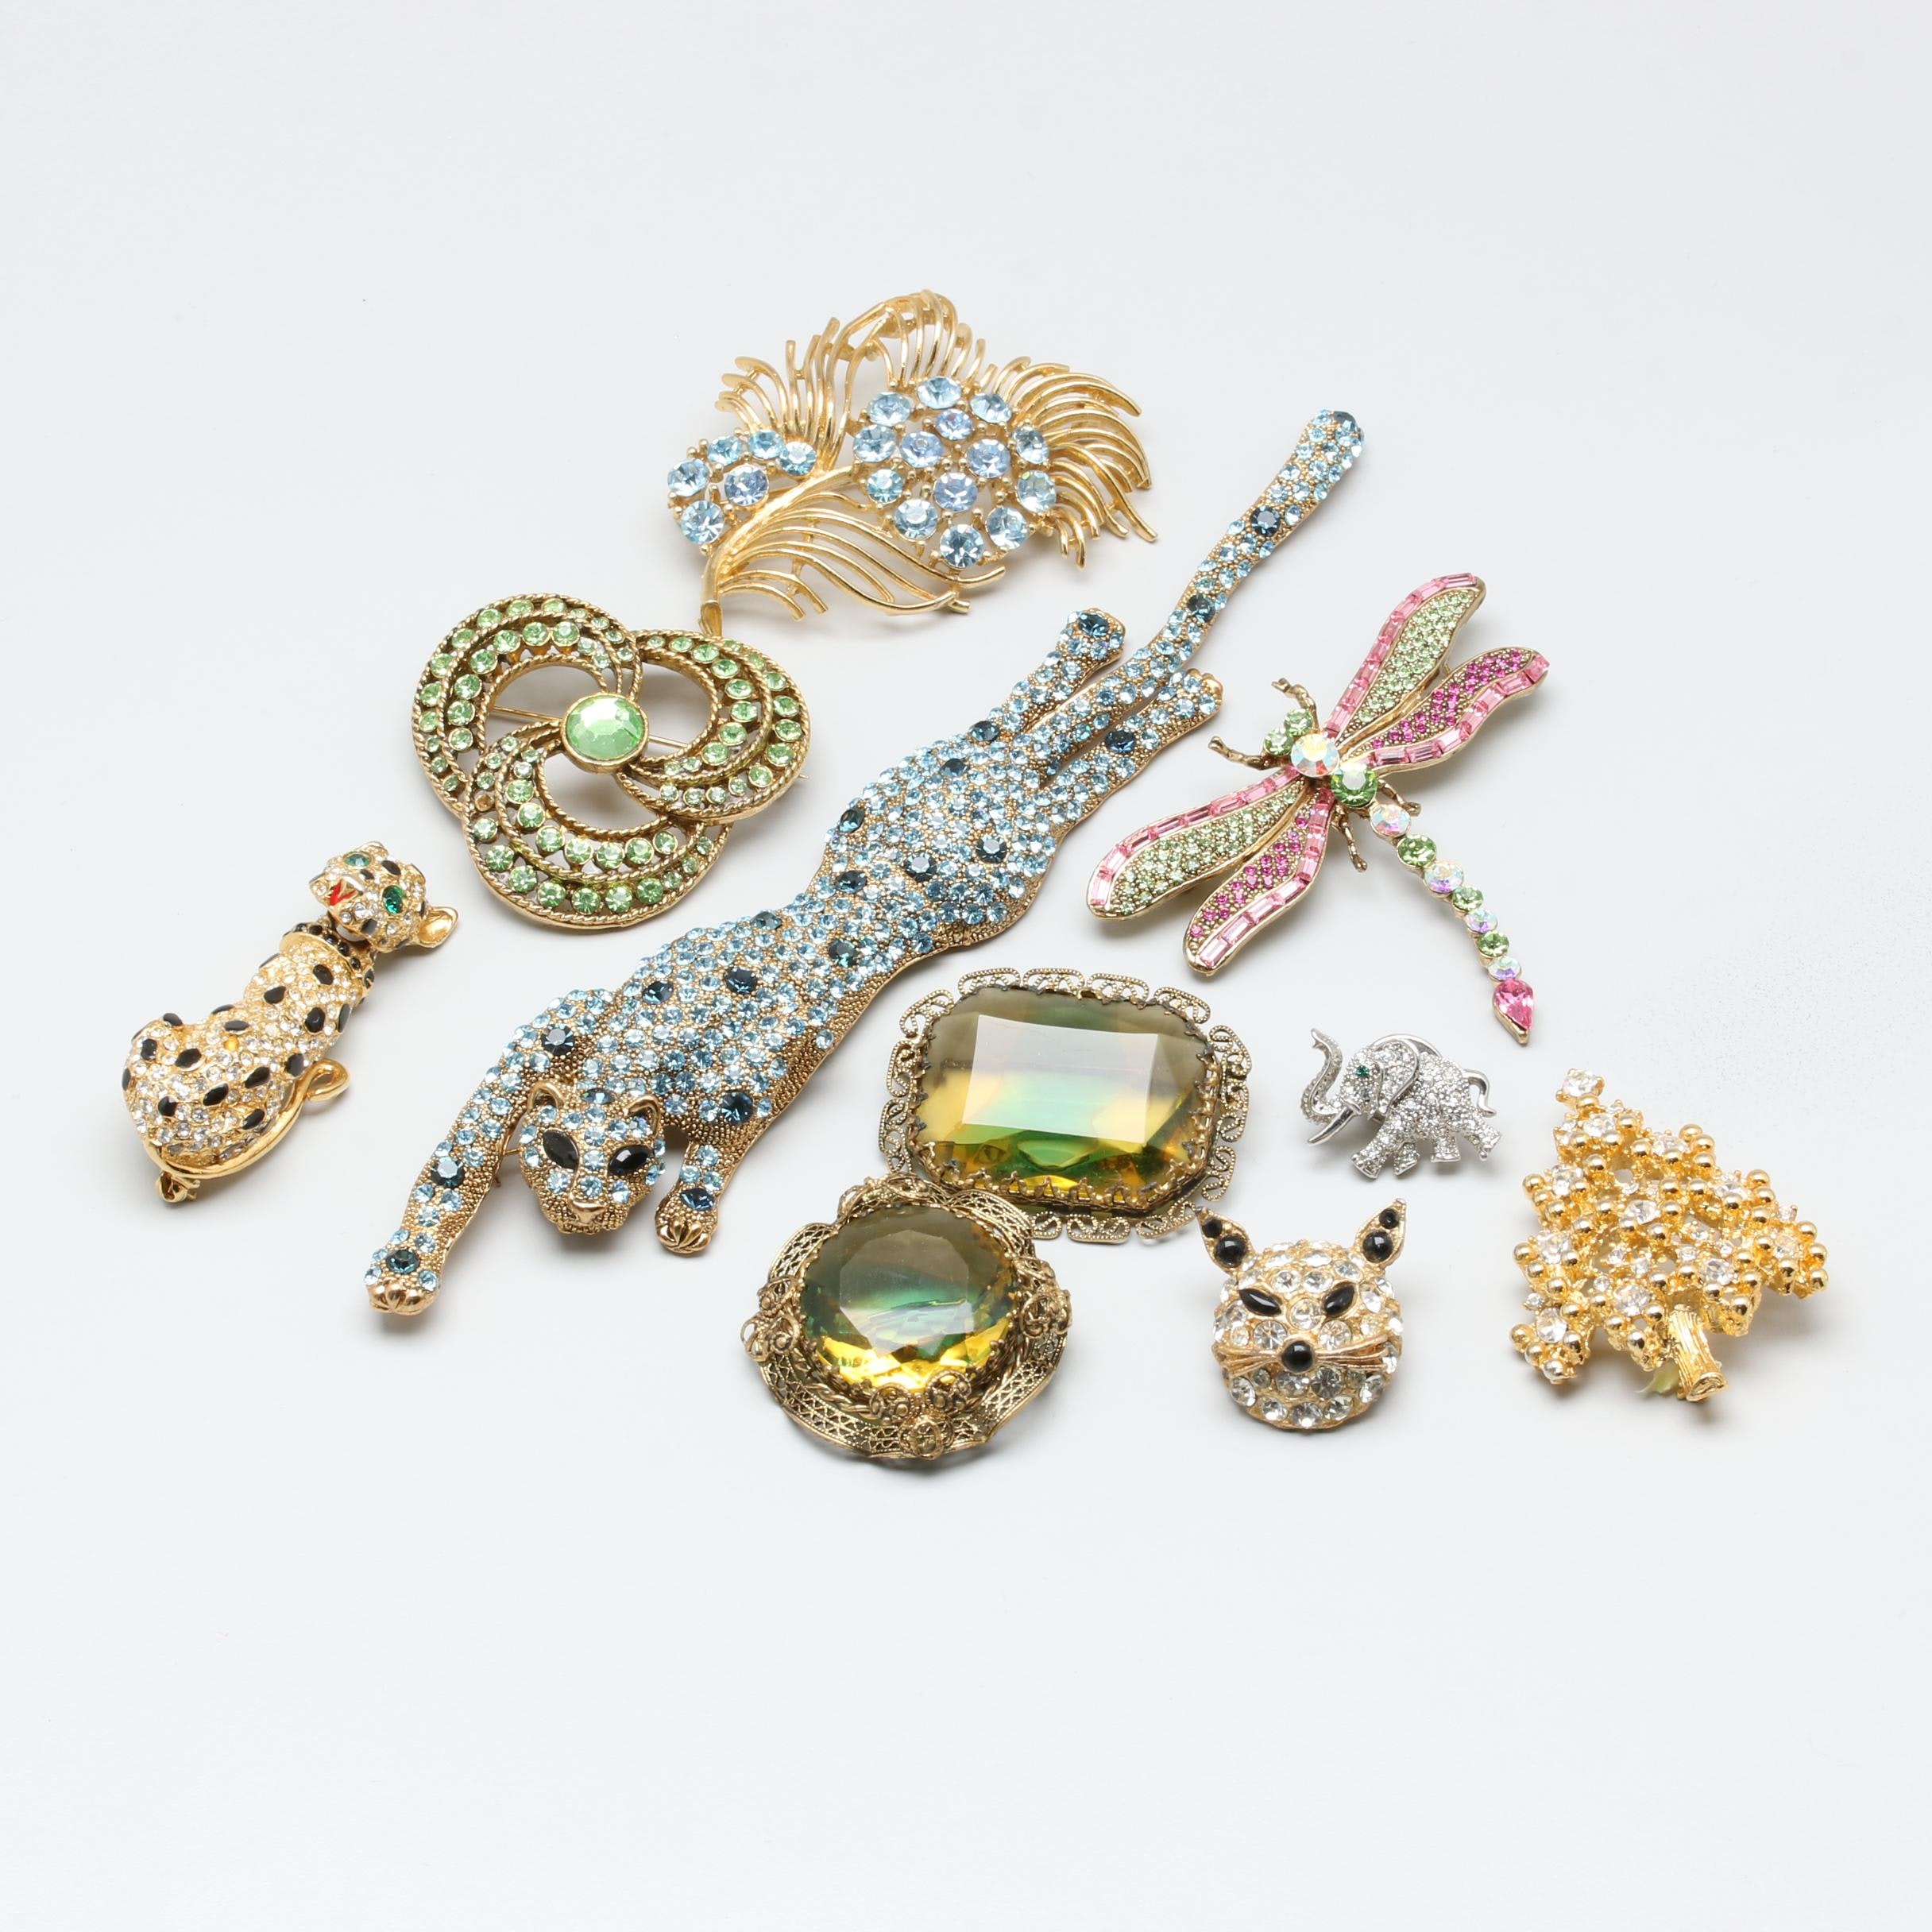 Animal Themed Brooch Collection Including Eisenberg Christmas Tree Brooch